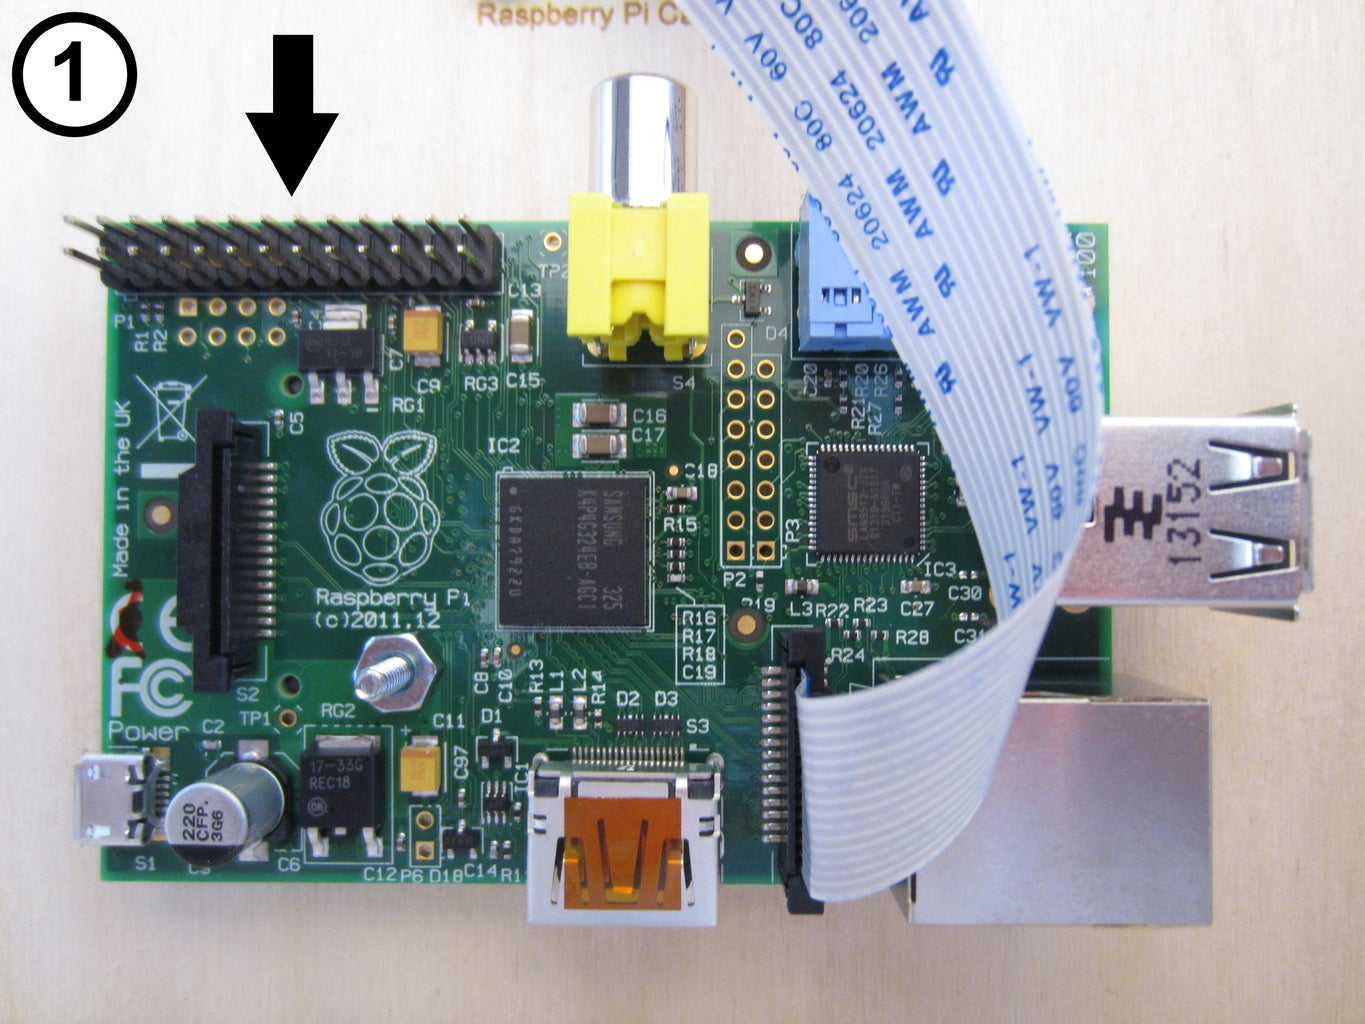 Connect the GPIO Wires